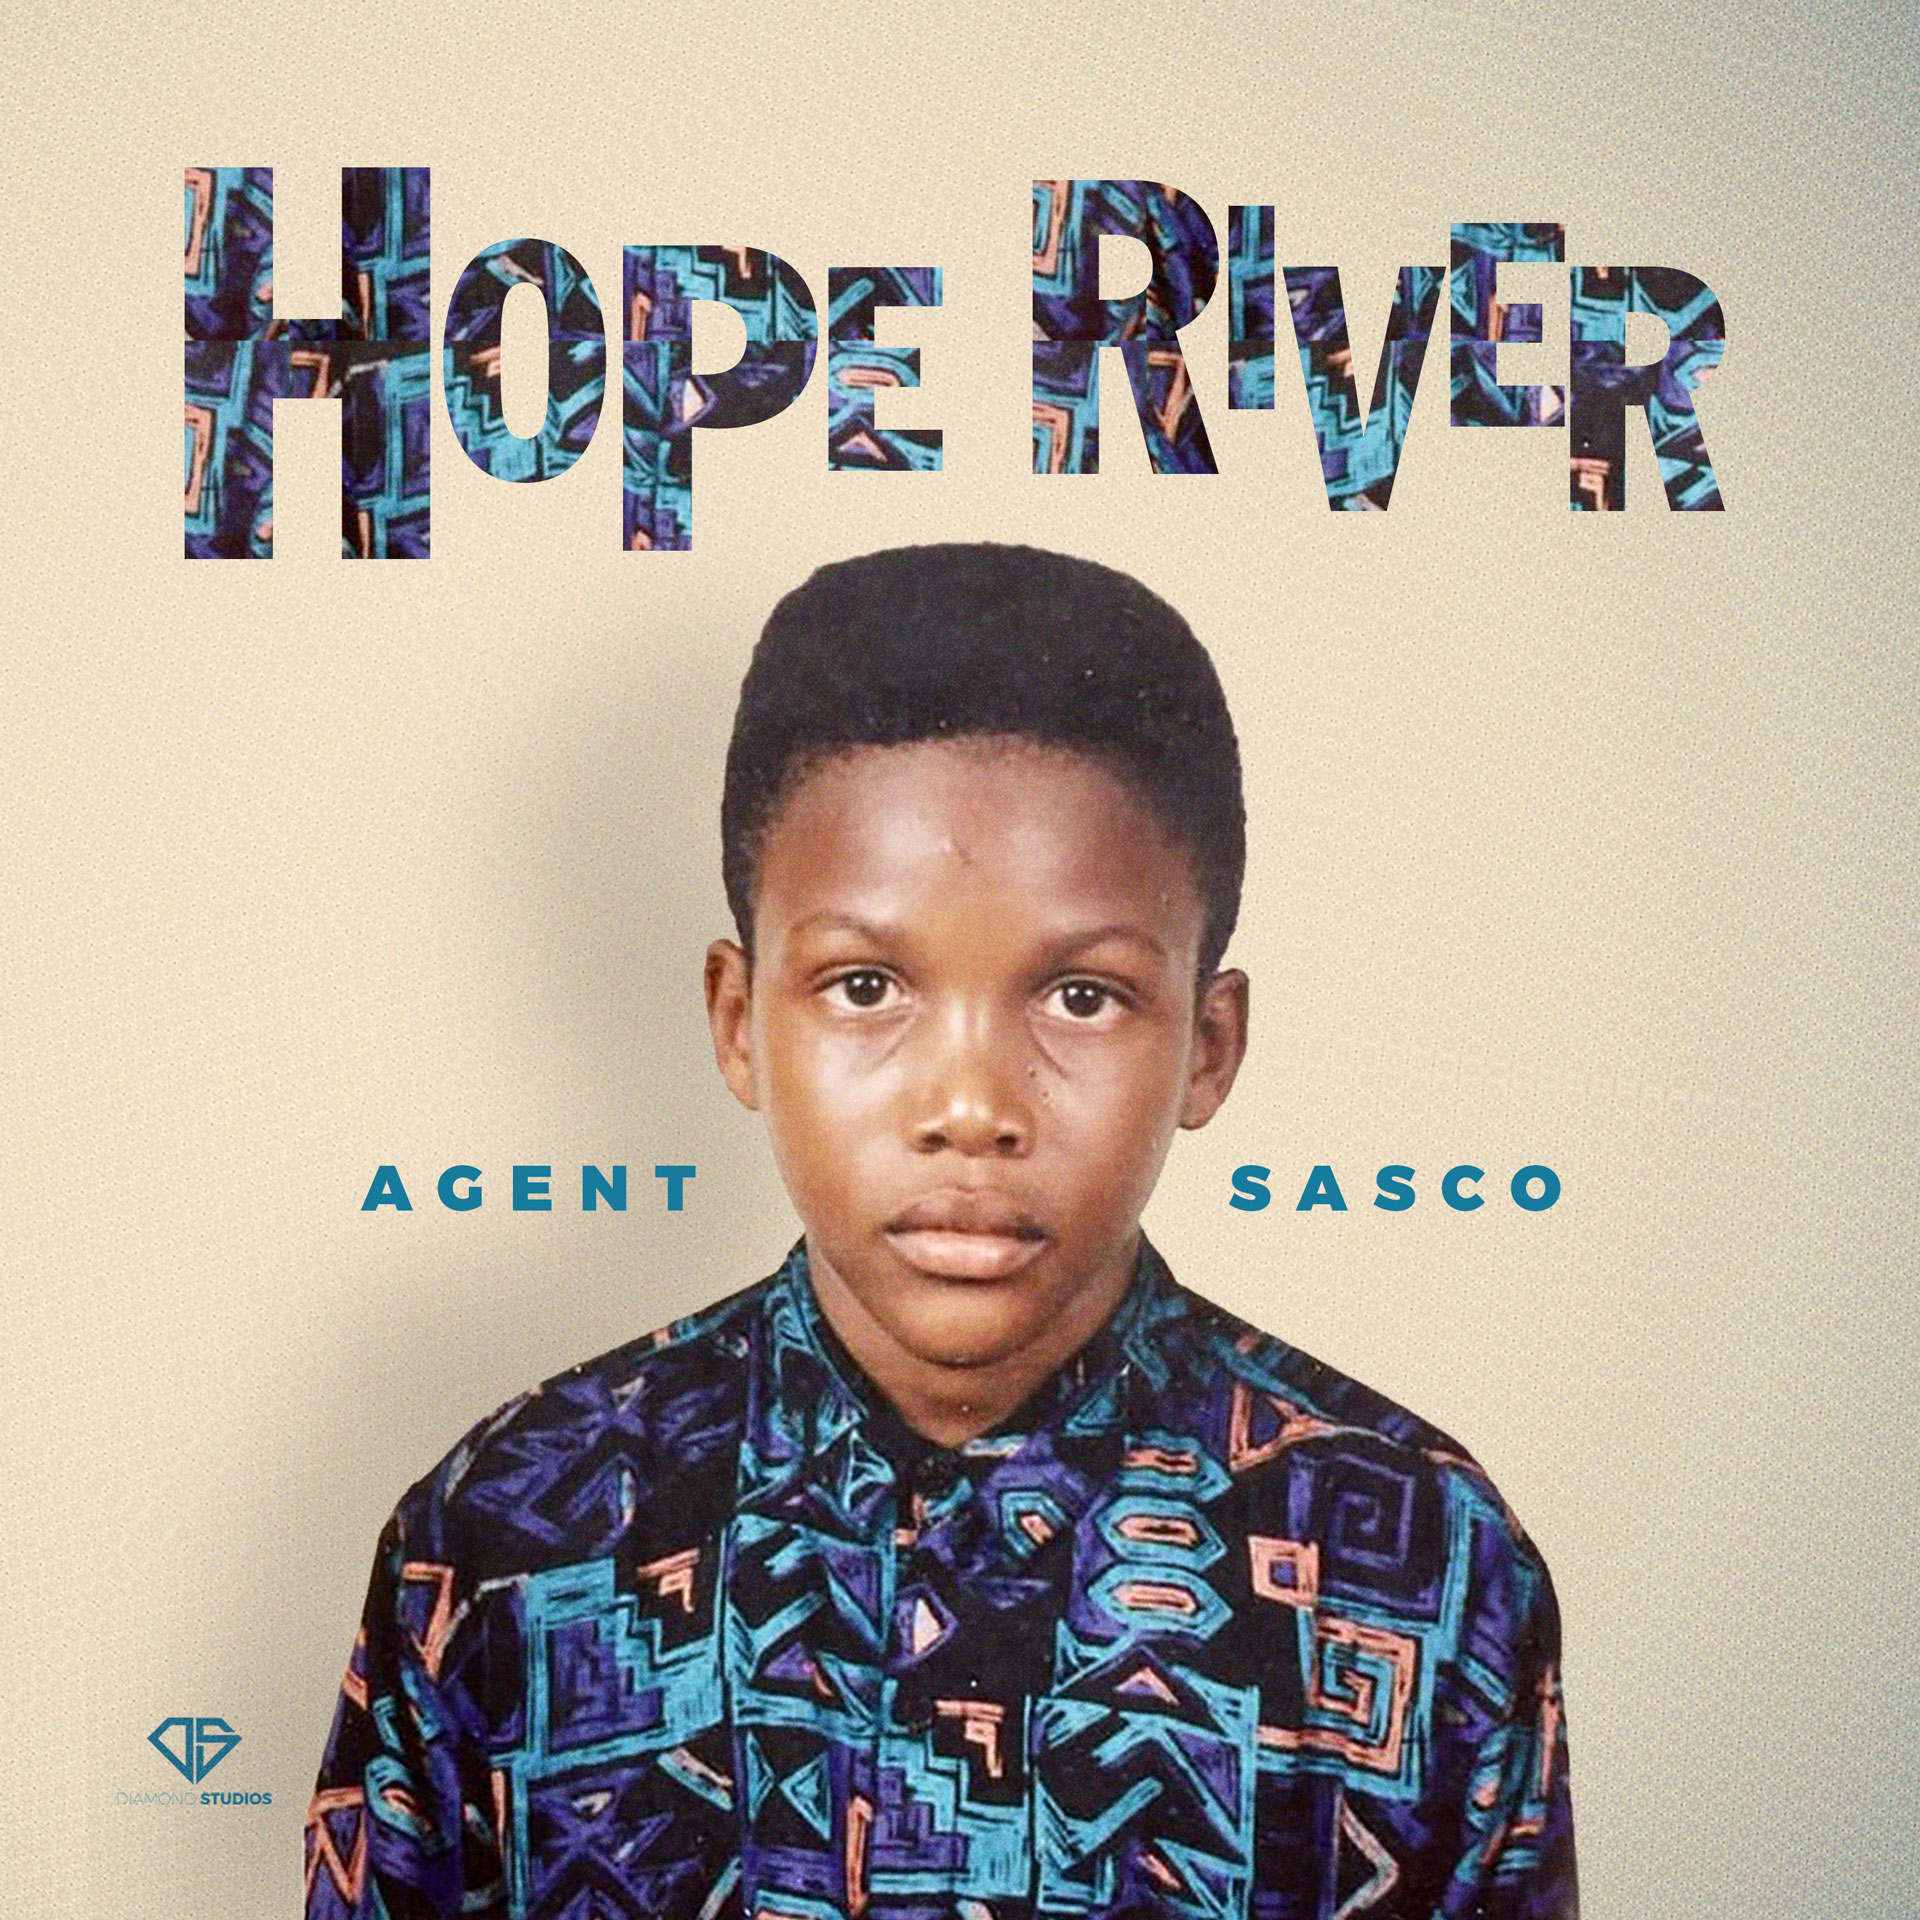 Agent Sasco aka Assassin – The Journey Continues!